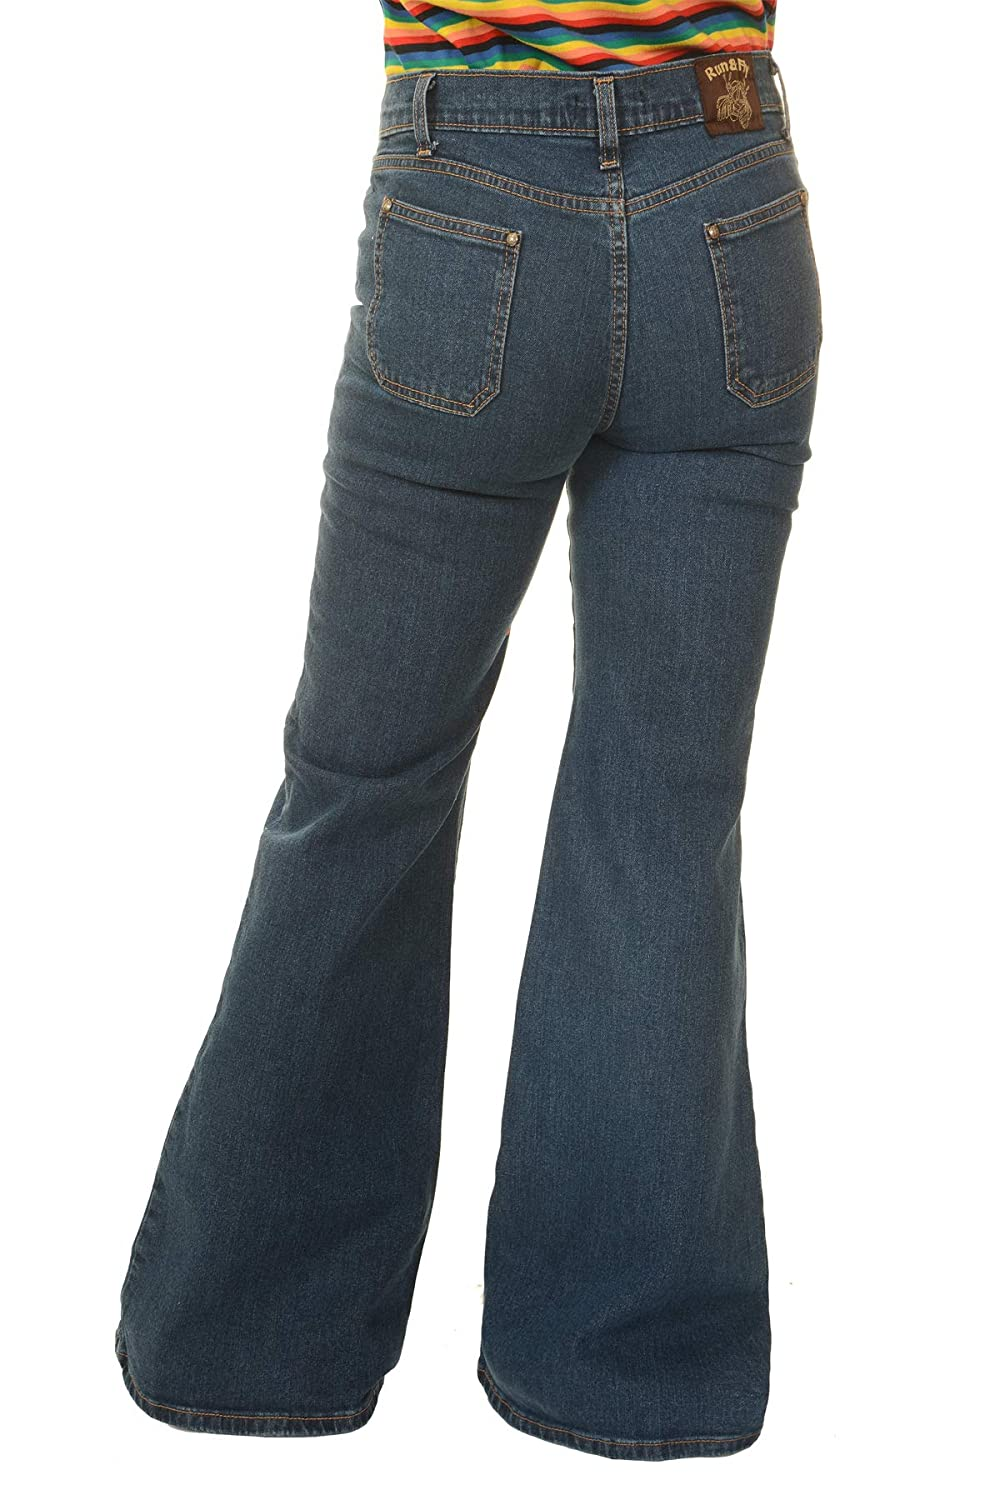 Vintage High Waisted Trousers, Sailor Pants, Jeans  60s 70s Disco New Vintage Blue Stretch Denim Wide Leg Bellbottom Hippy Flares Run & Fly Ladies Womens Retro £29.99 AT vintagedancer.com